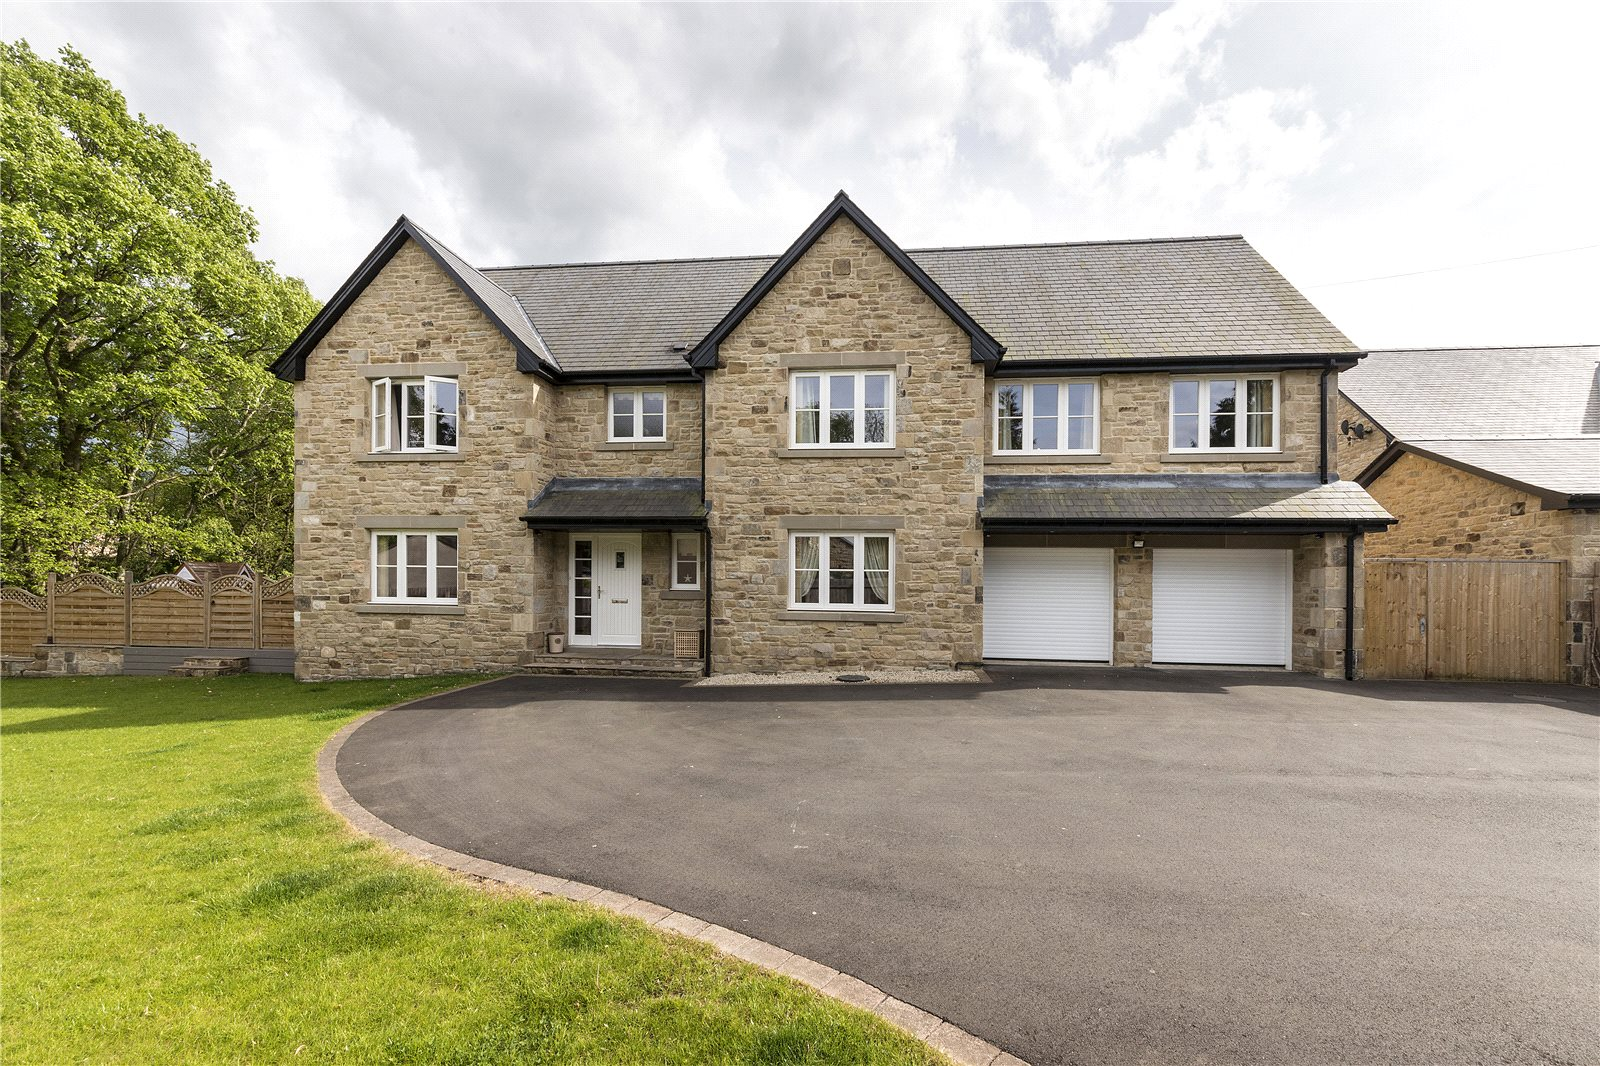 Single Family Home for Sale at Church Lane, Riding Mill, Northumberland, NE44 Riding Mill, England